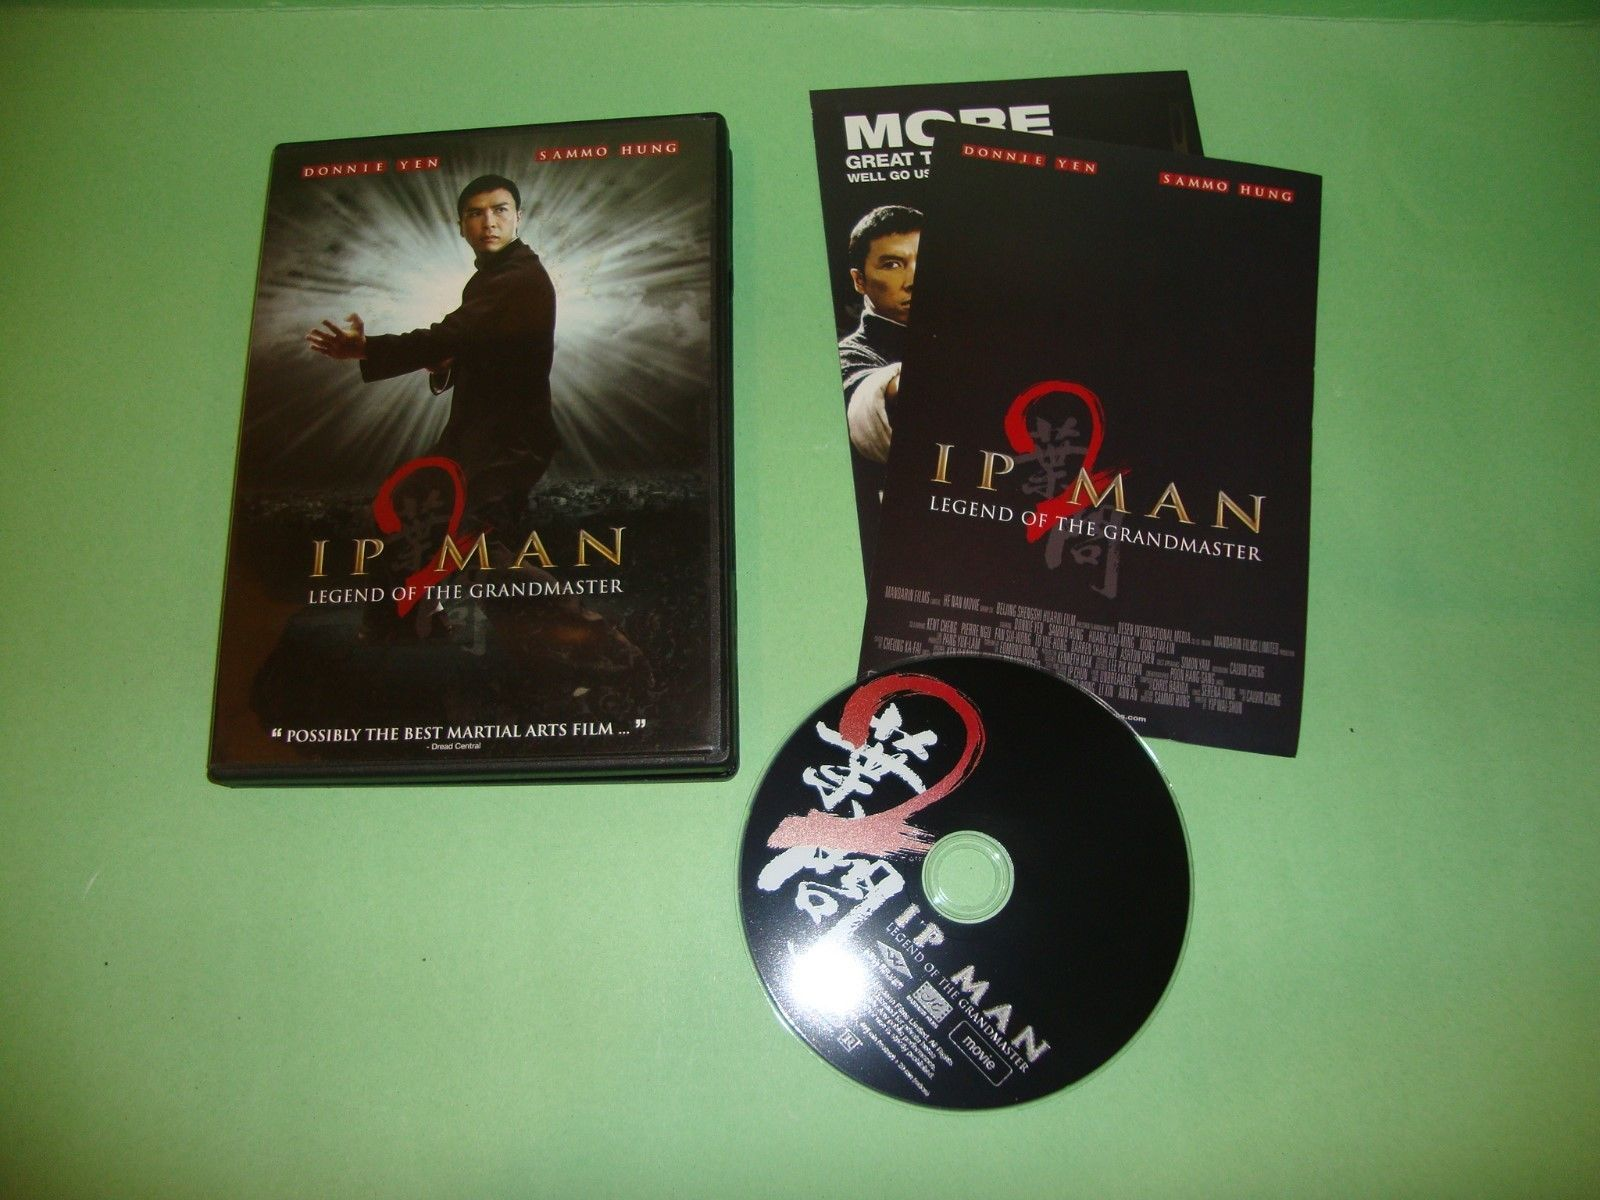 Ip Man 2: Legend of the Grandmaster (DVD, 2011)